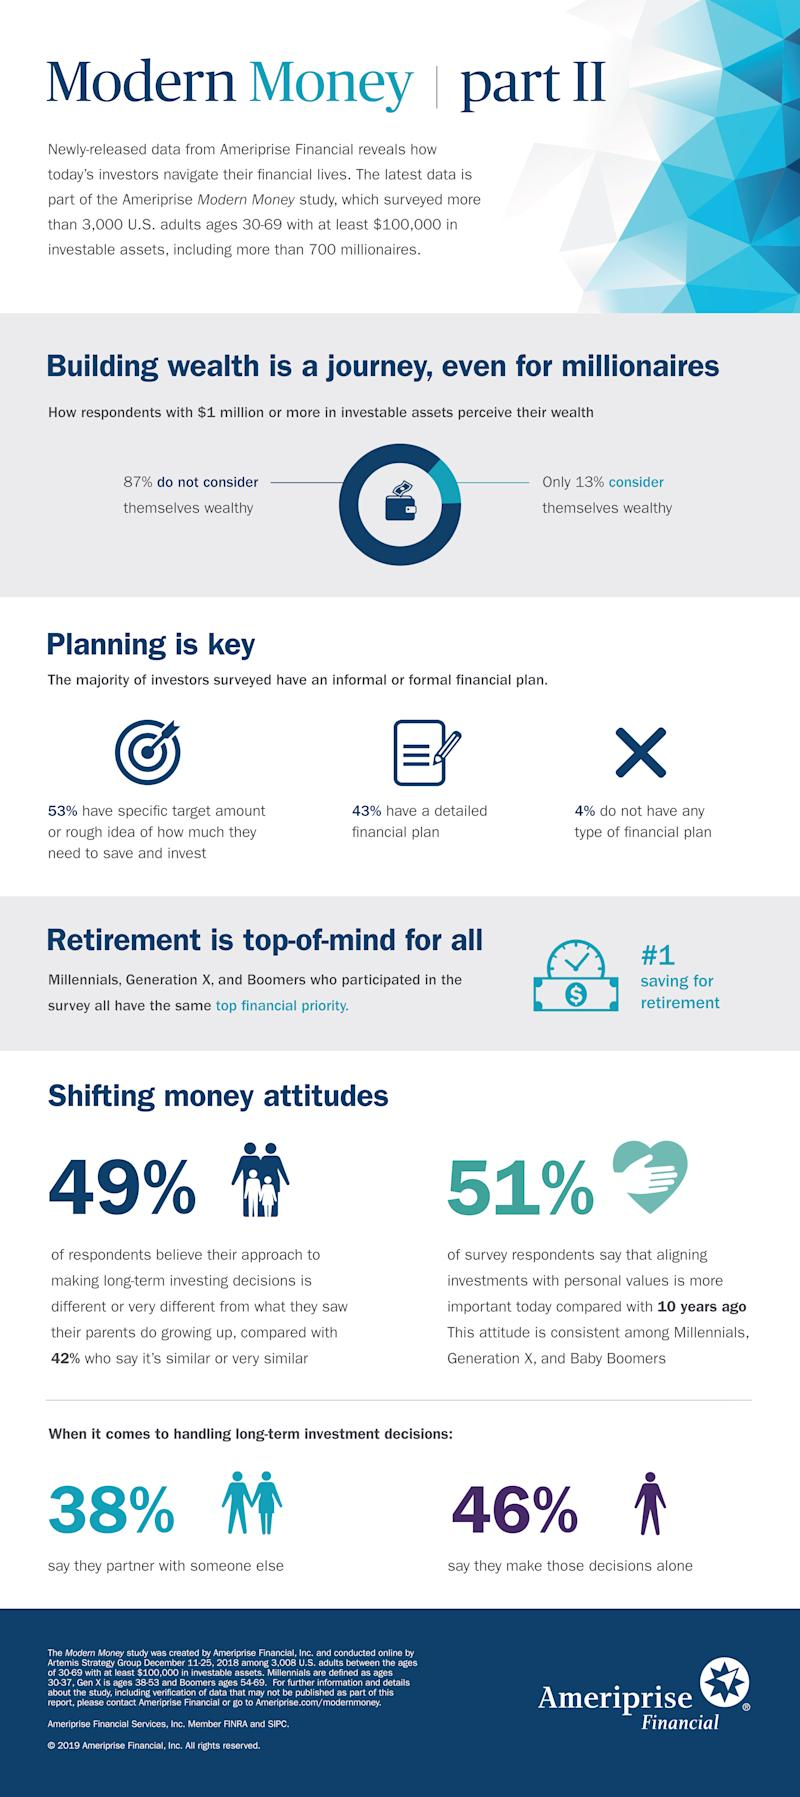 Majority of Investors with $1 Million or More in Assets do not Consider Themselves Wealthy, According to Ameriprise Study